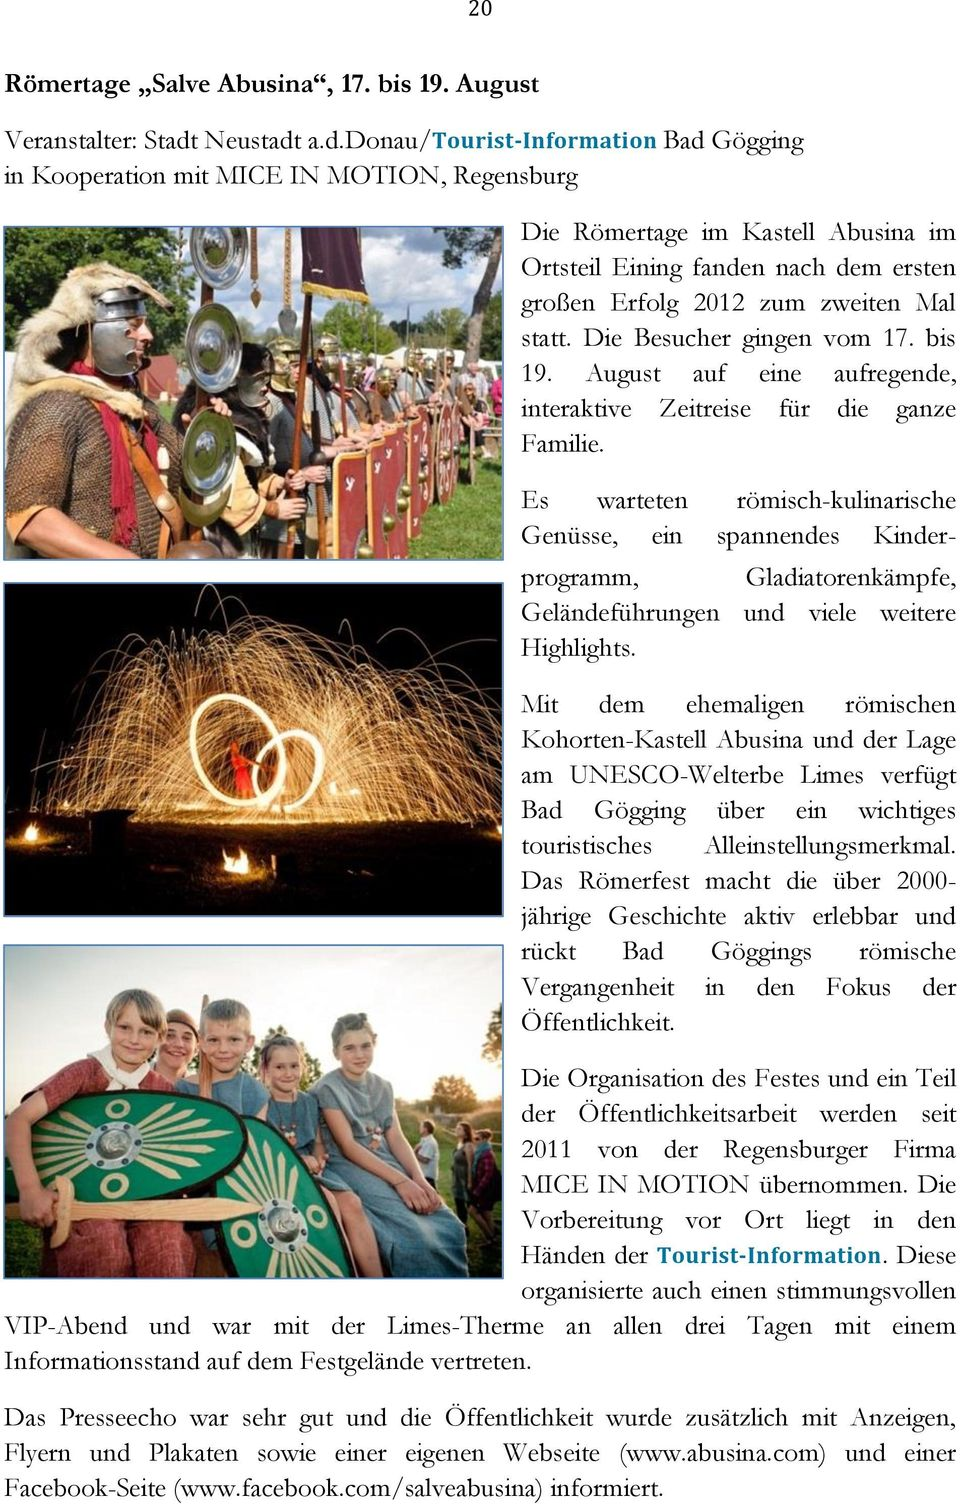 a.d.donau/tourist-information Bad Gögging in Kooperation mit MICE IN MOTION, Regensburg Die Römertage im Kastell Abusina im Ortsteil Eining fanden nach dem ersten großen Erfolg 2012 zum zweiten Mal